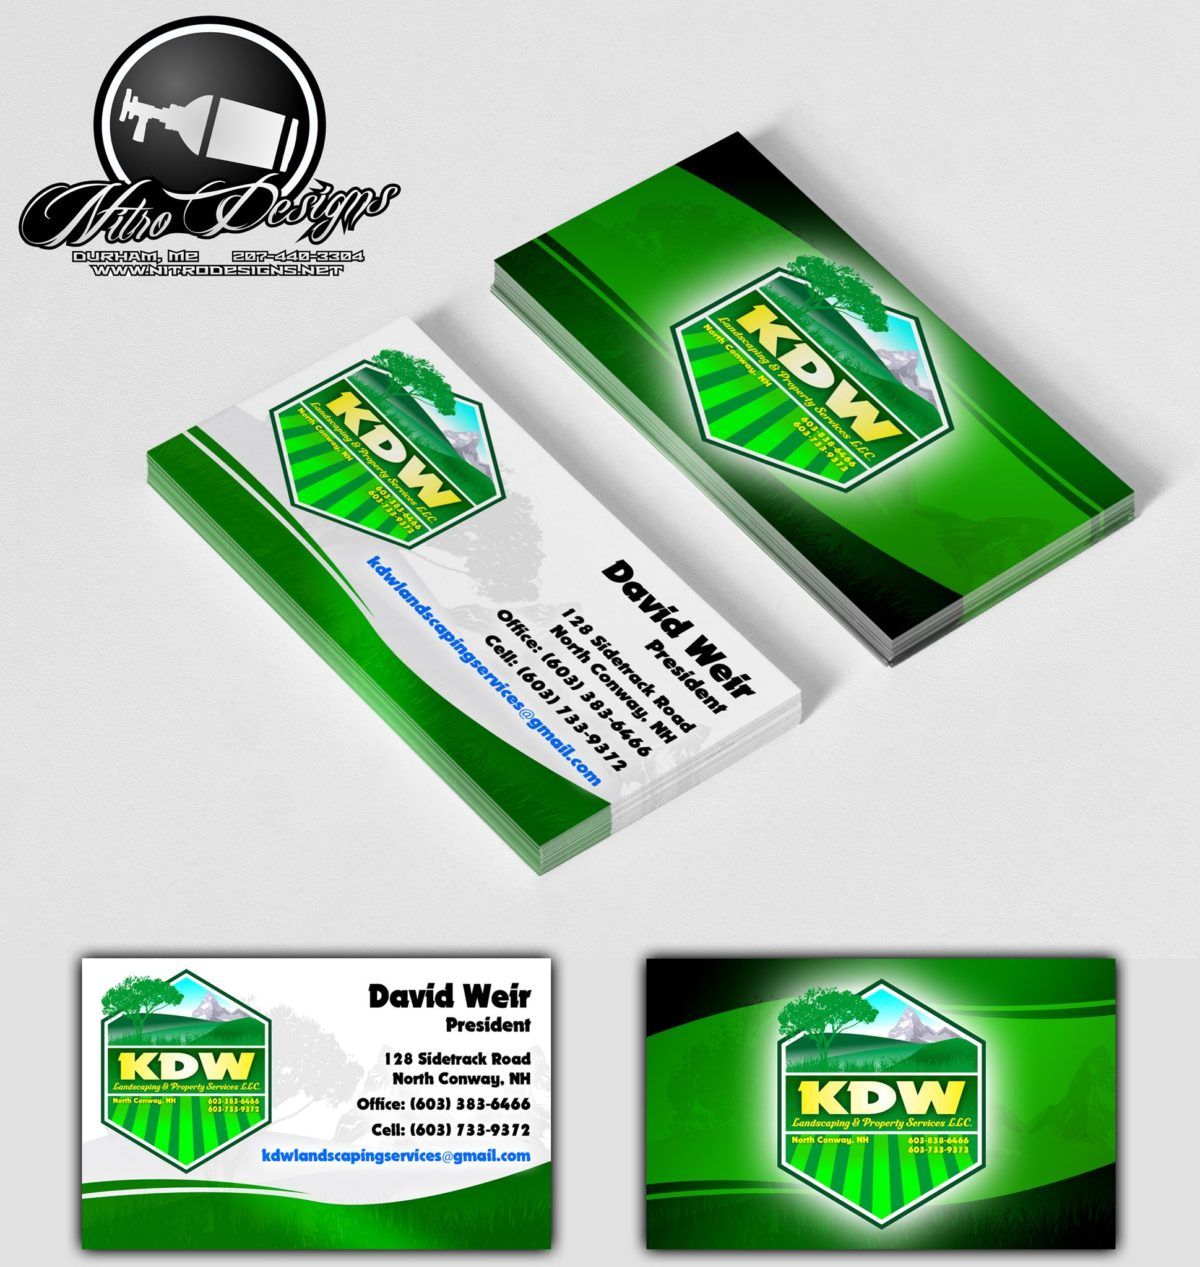 kdw landscaping business cards - Landscaping Business Cards